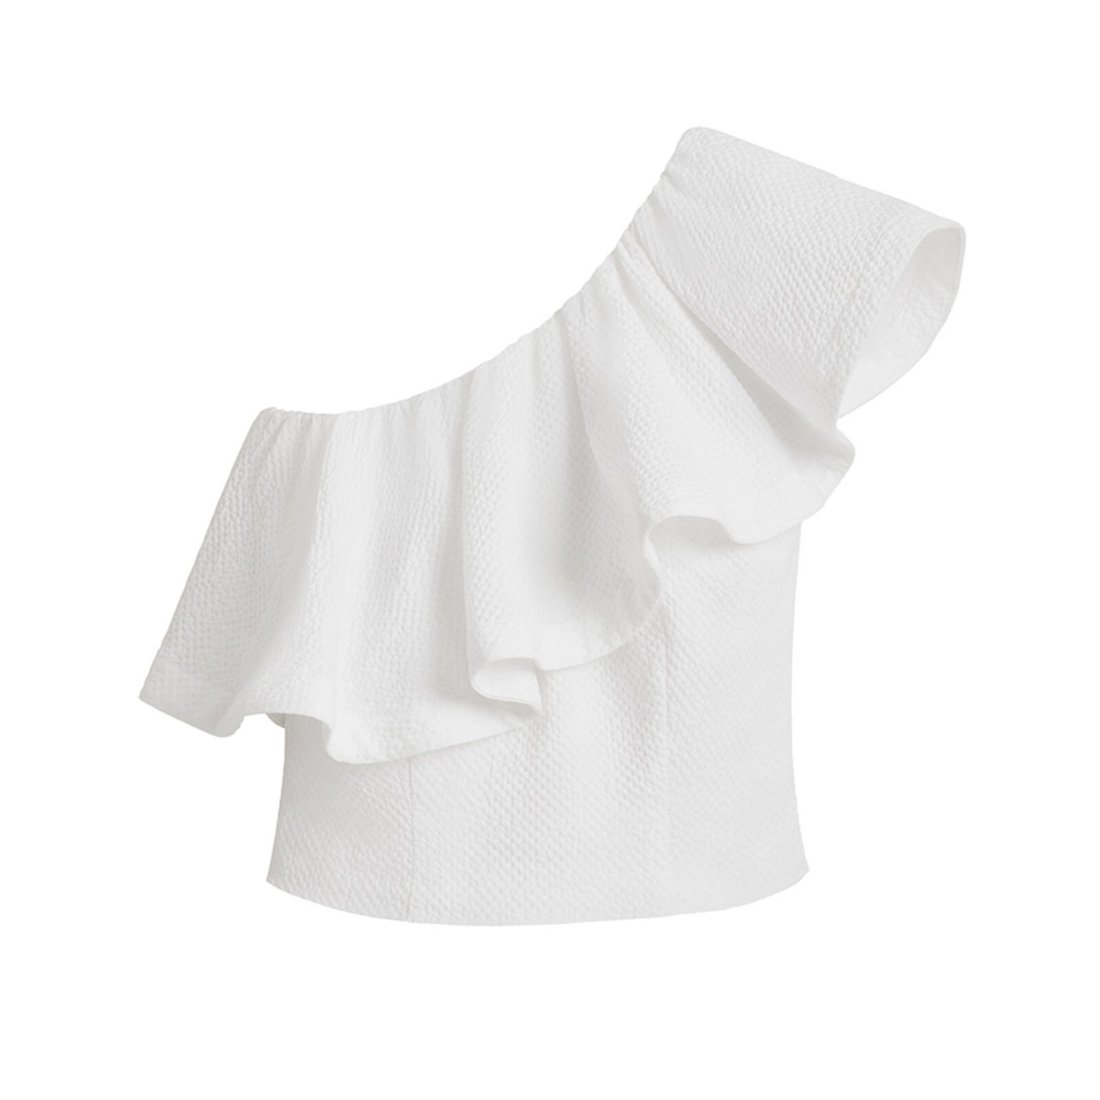 Product image of Cuyana Cropped Flounce Top in White